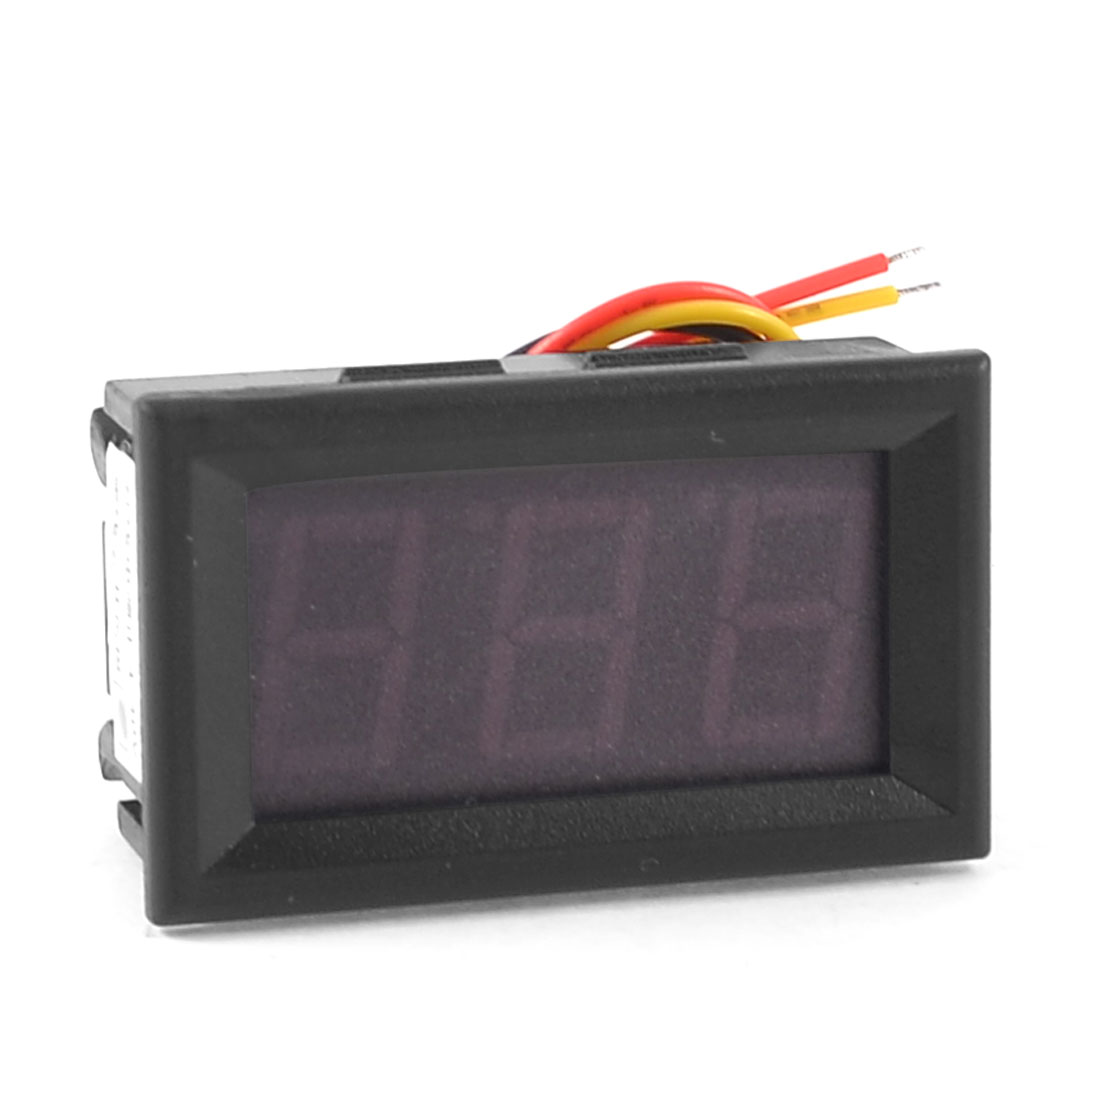 Red 3 Digits 7 Segments LED Display Voltage Test Voltmeter DC 0-200V